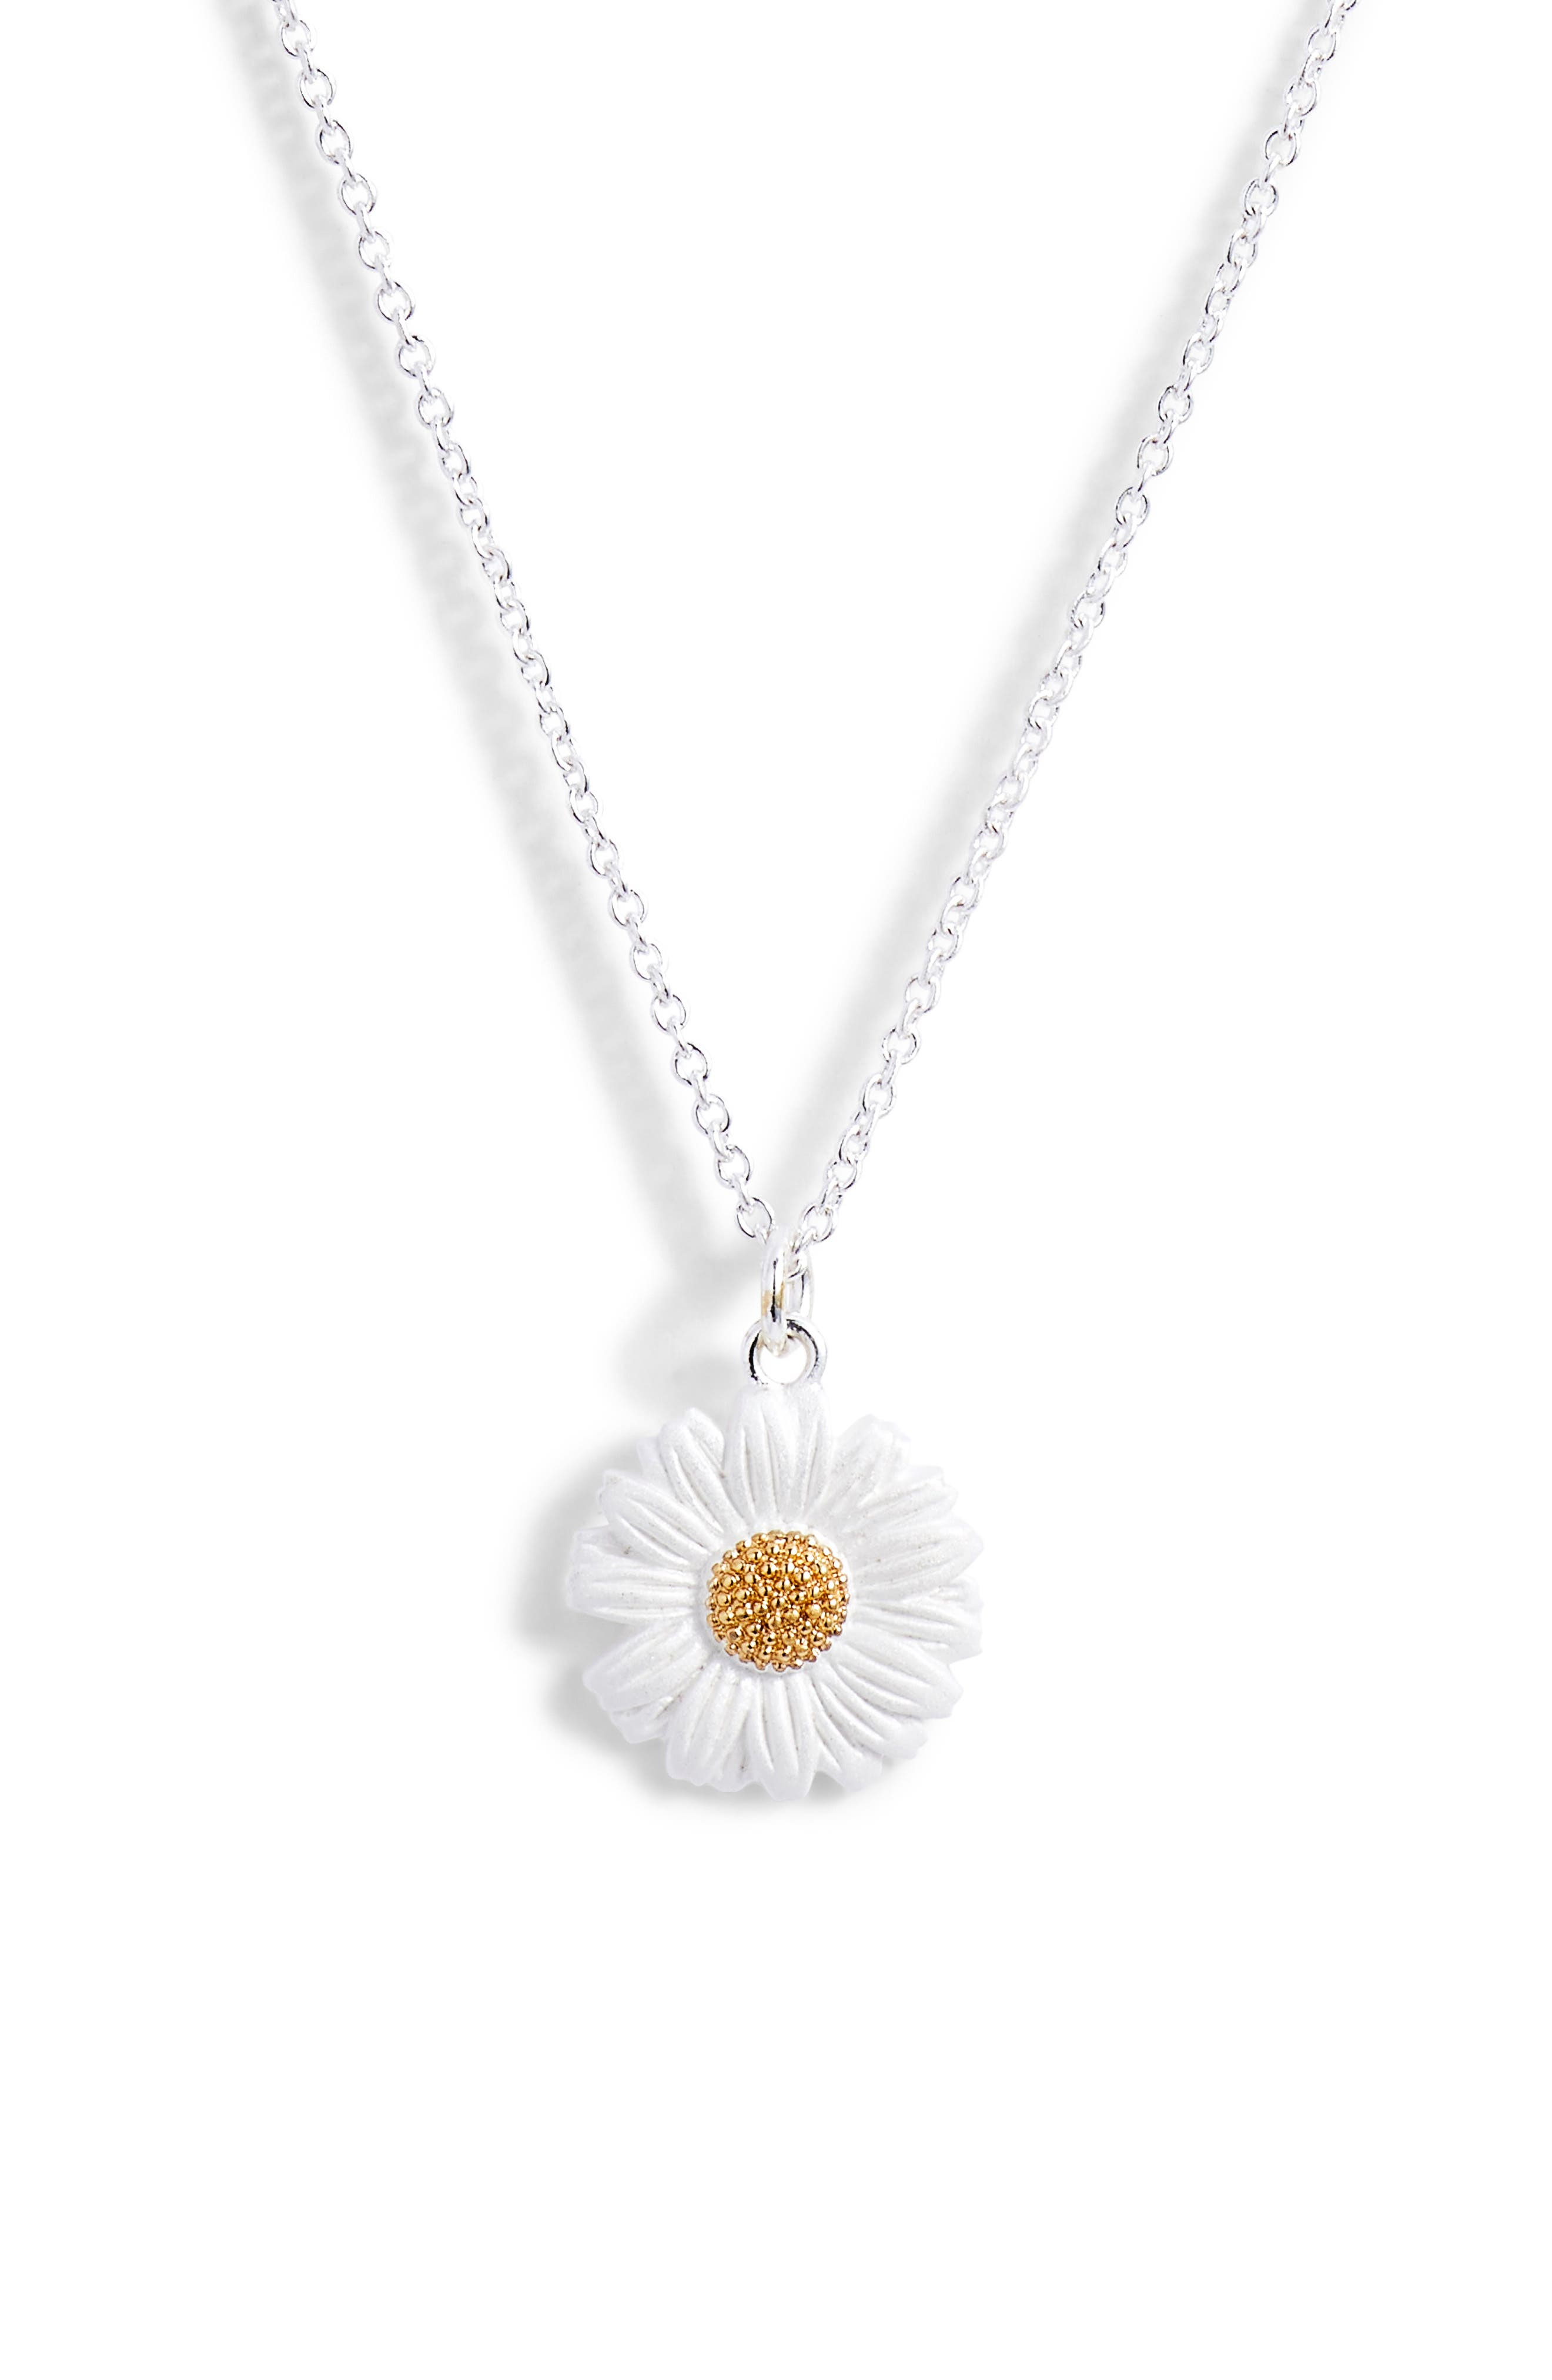 3D DAISY PENDANT NECKLACE